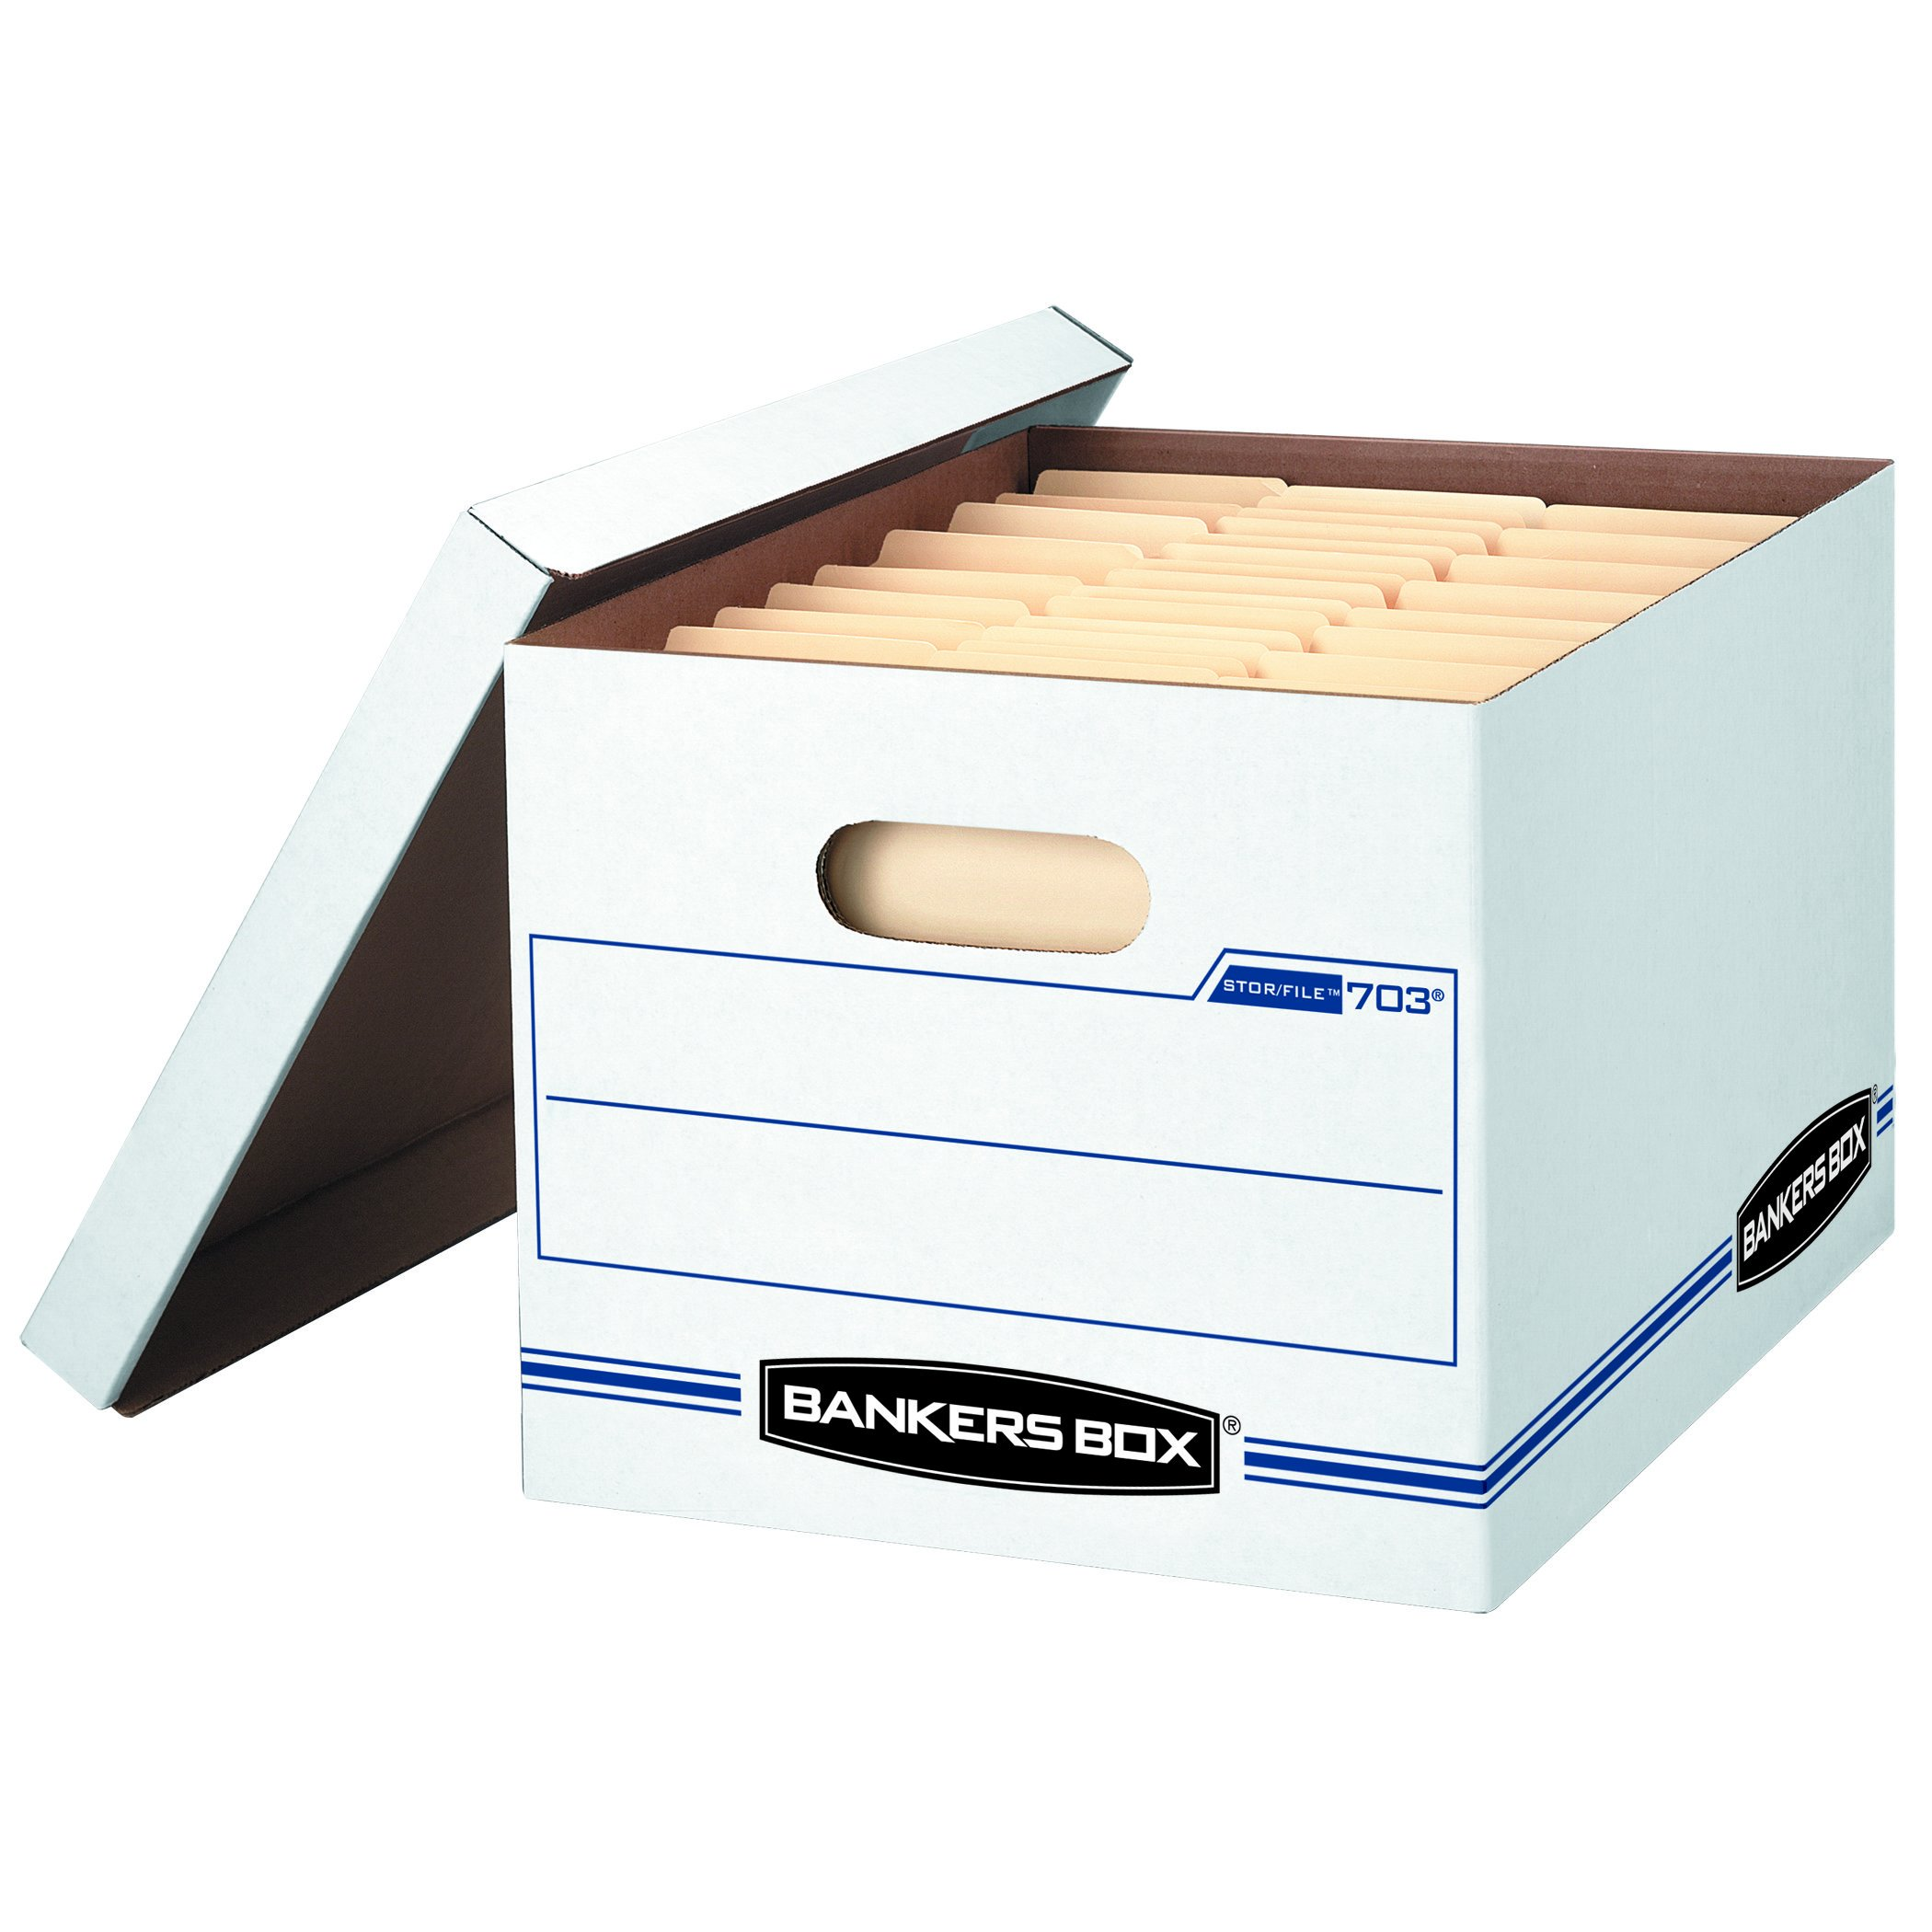 Bankers Box Stor/File Storage Box with Lift-Off Lid, Letter/Legal, 12 x 10 x 15 inches, White, 30 Pack (0071304)